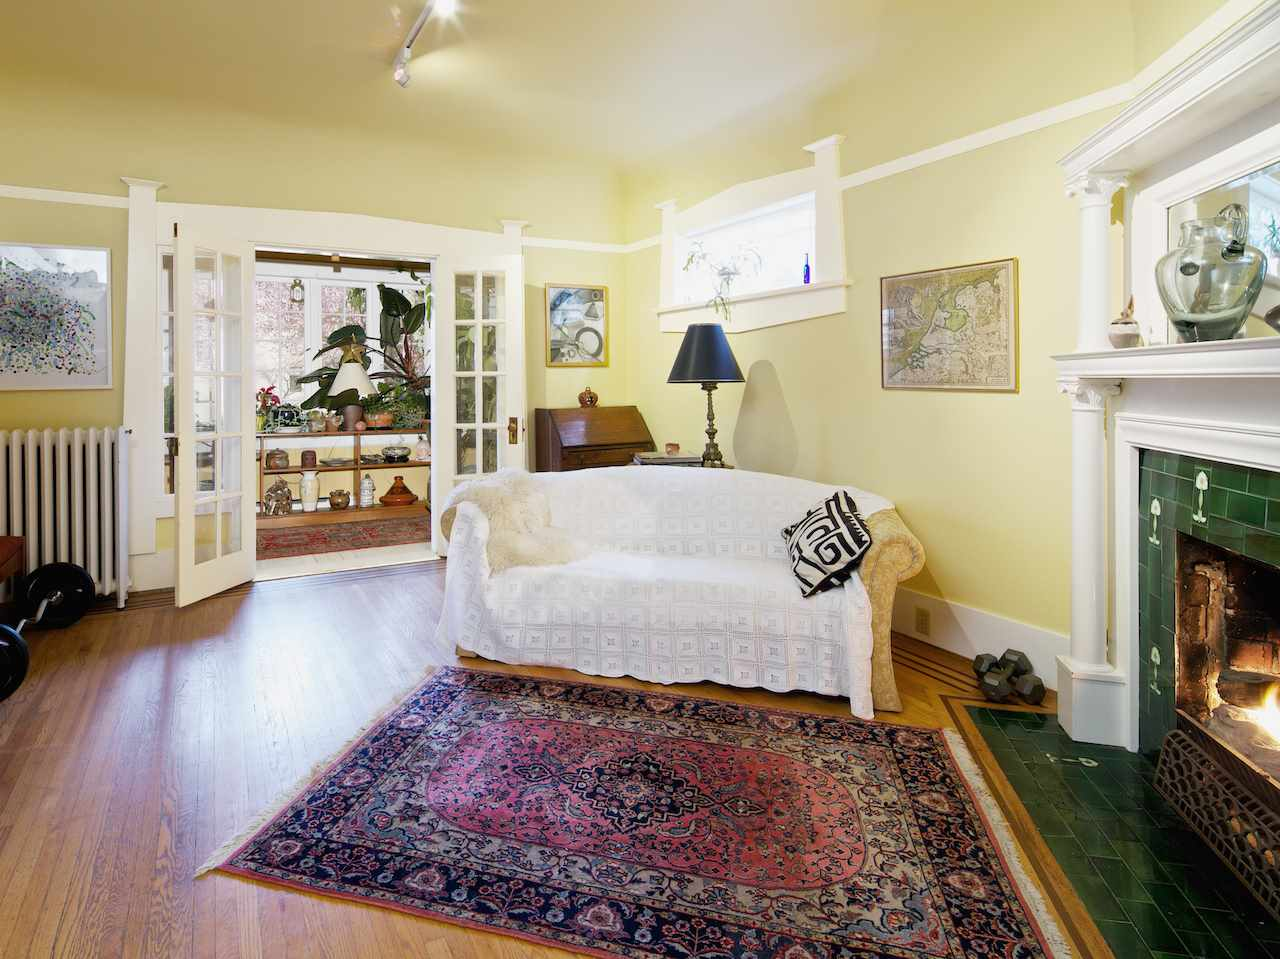 Photo 12: 1849 CREELMAN Avenue in Vancouver: Kitsilano House for sale (Vancouver West)  : MLS® # R2045415